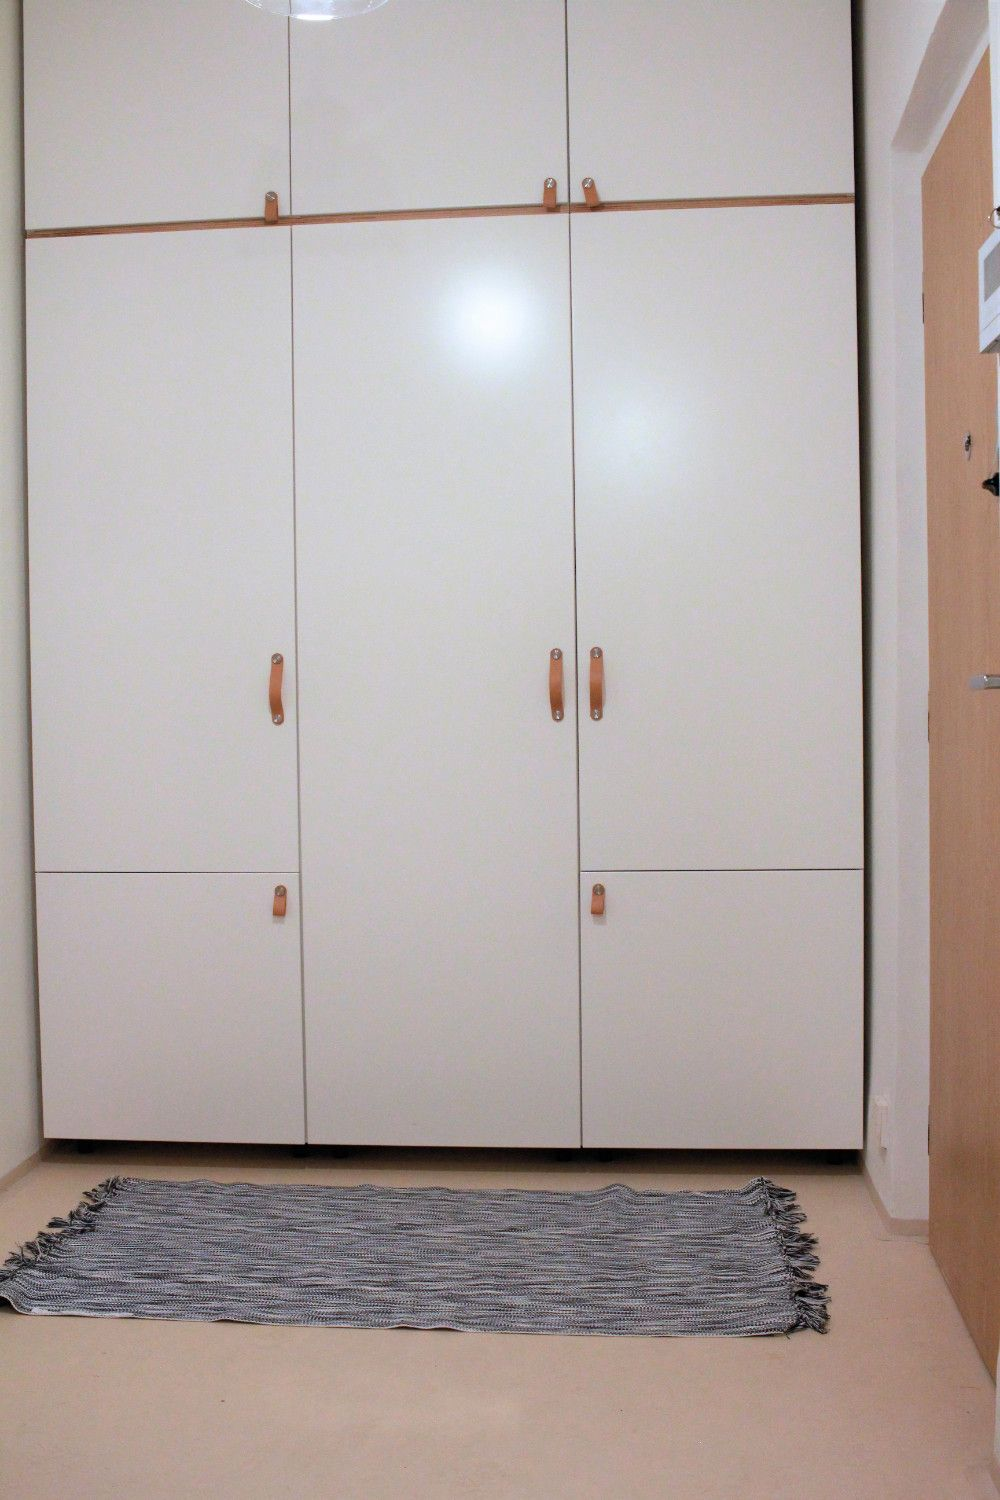 Using Ikea Kitchen Cabinets As A Closet Our Guide To The Everyday Ikea Storage Cabinets Ikea Kitchen Cabinets Ikea Kitchen Cupboards